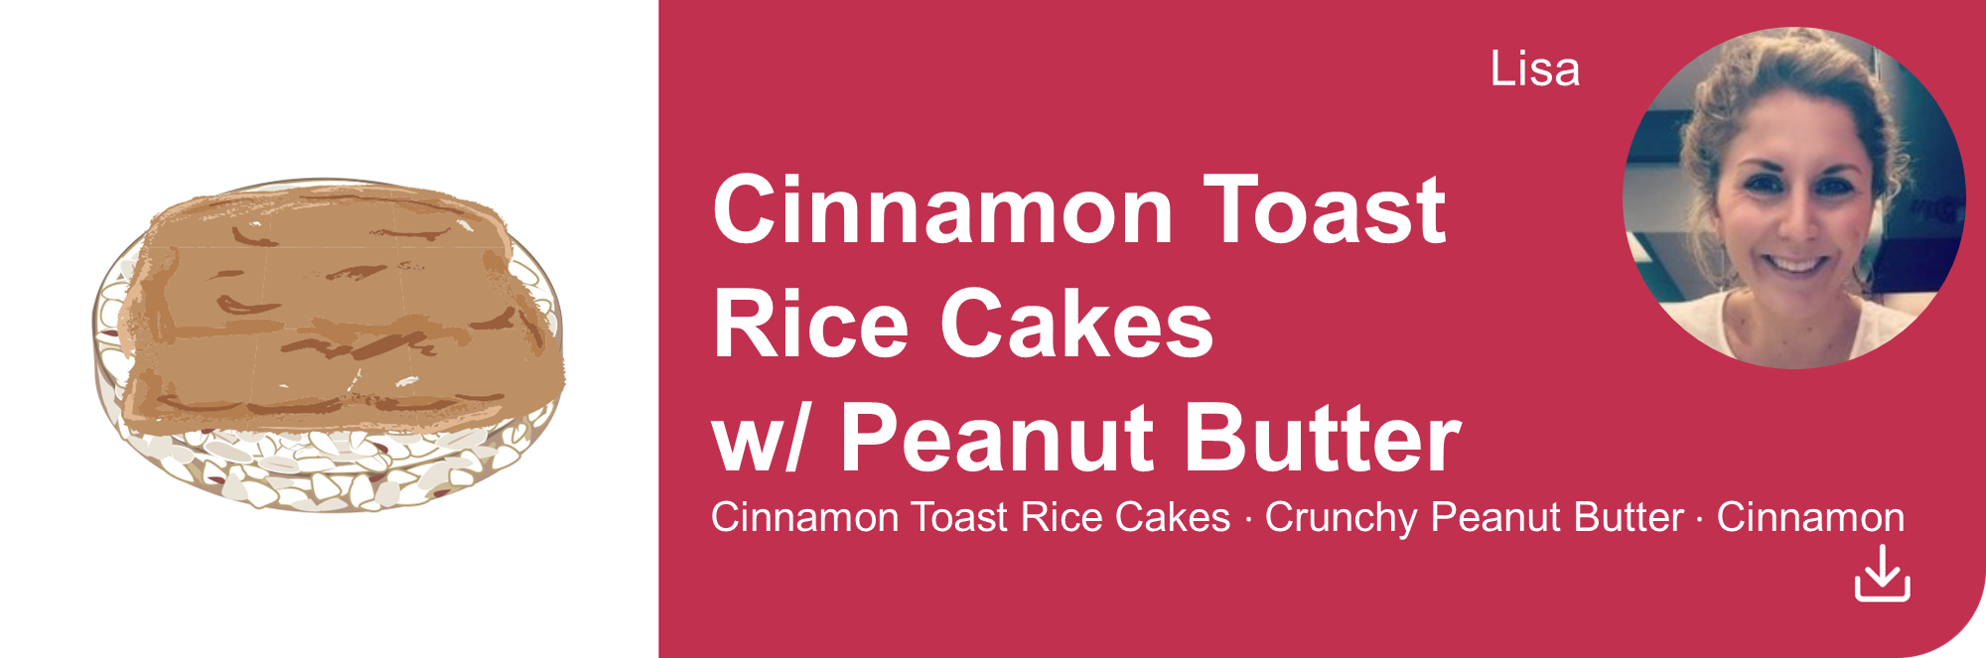 Creative Marketing Concepts_QuarantineAndChill_Comfort Food Edition_Cinnamon Rice Cakes_Lisa